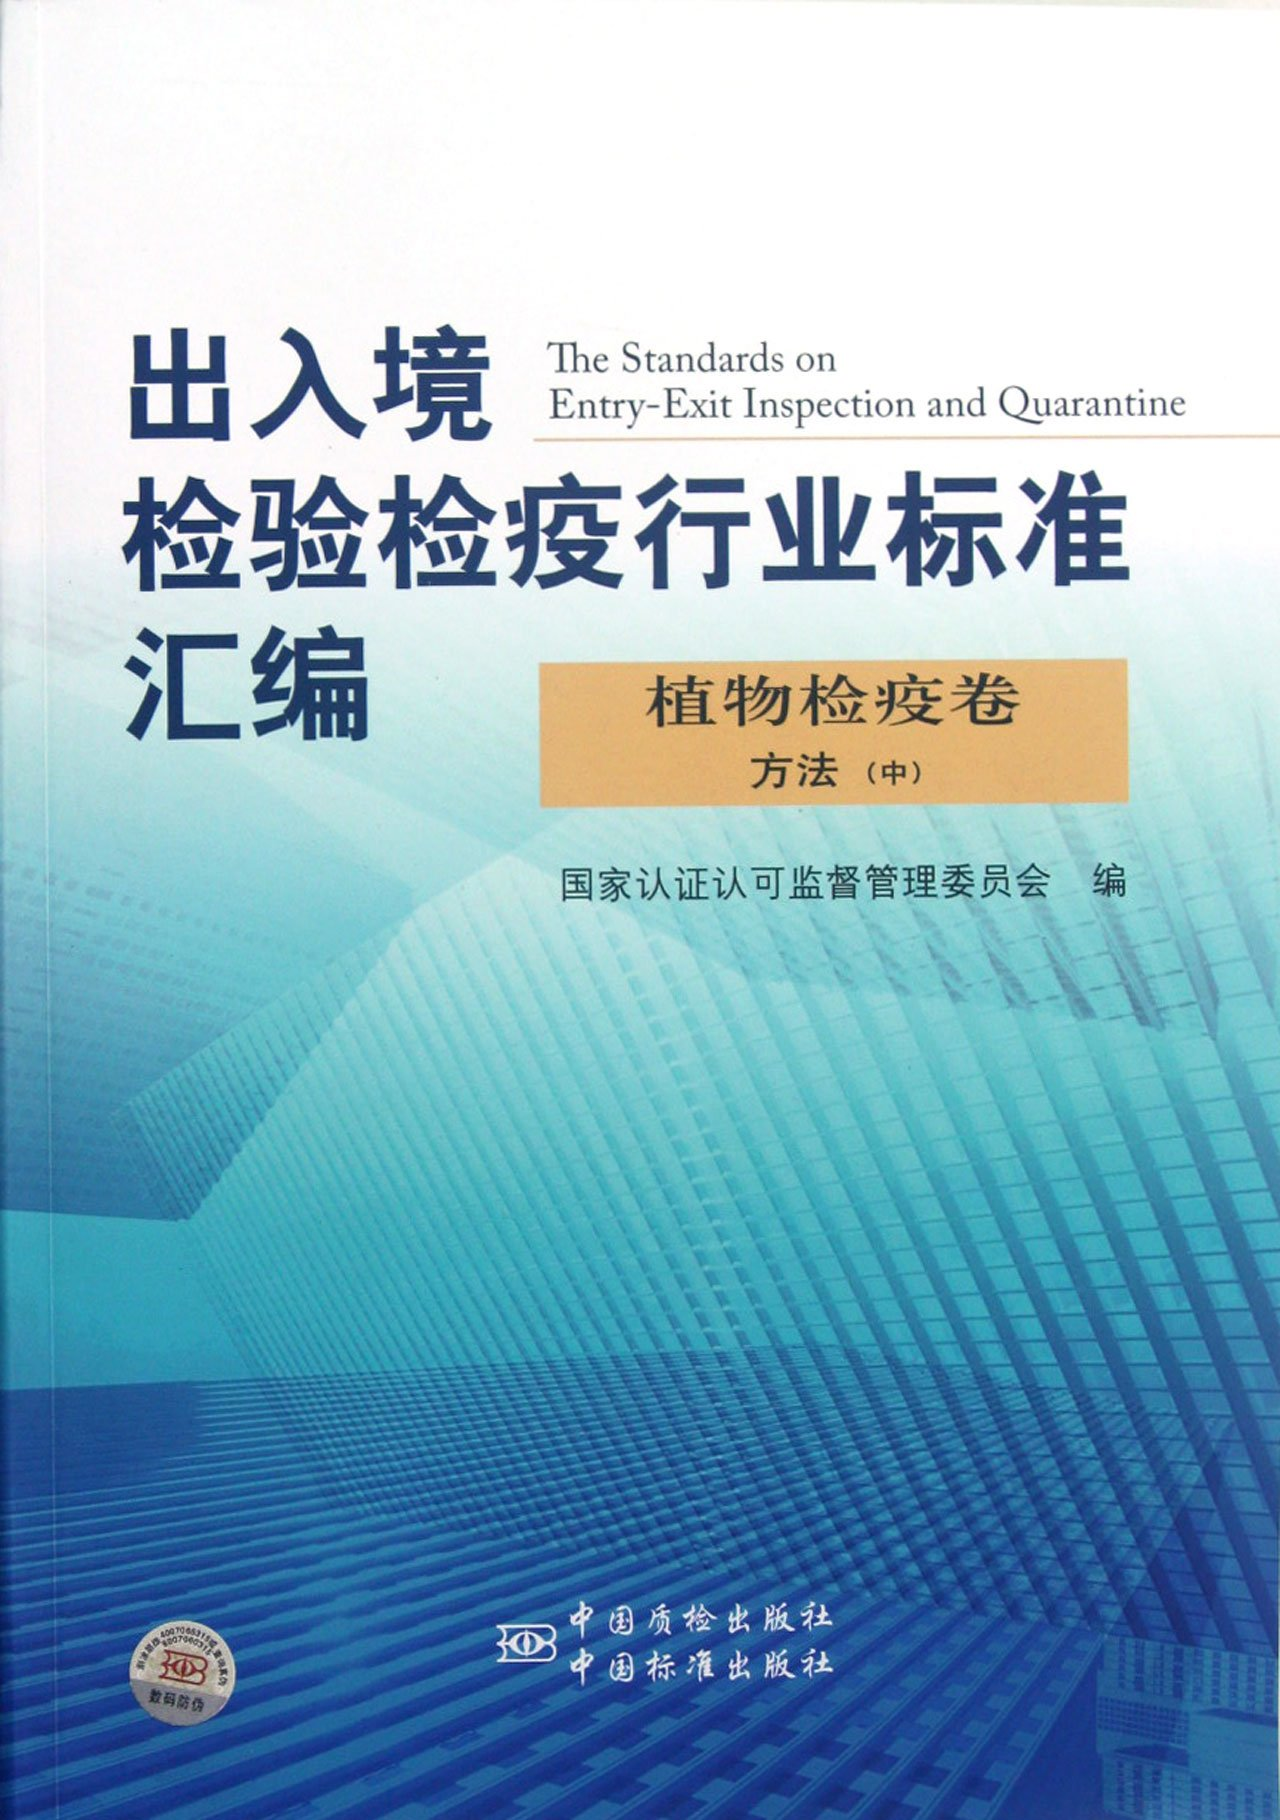 Plant Quarantine - the entry and exit inspection and quarantine industry standard assembly - methods-II (Chinese Edition) PDF